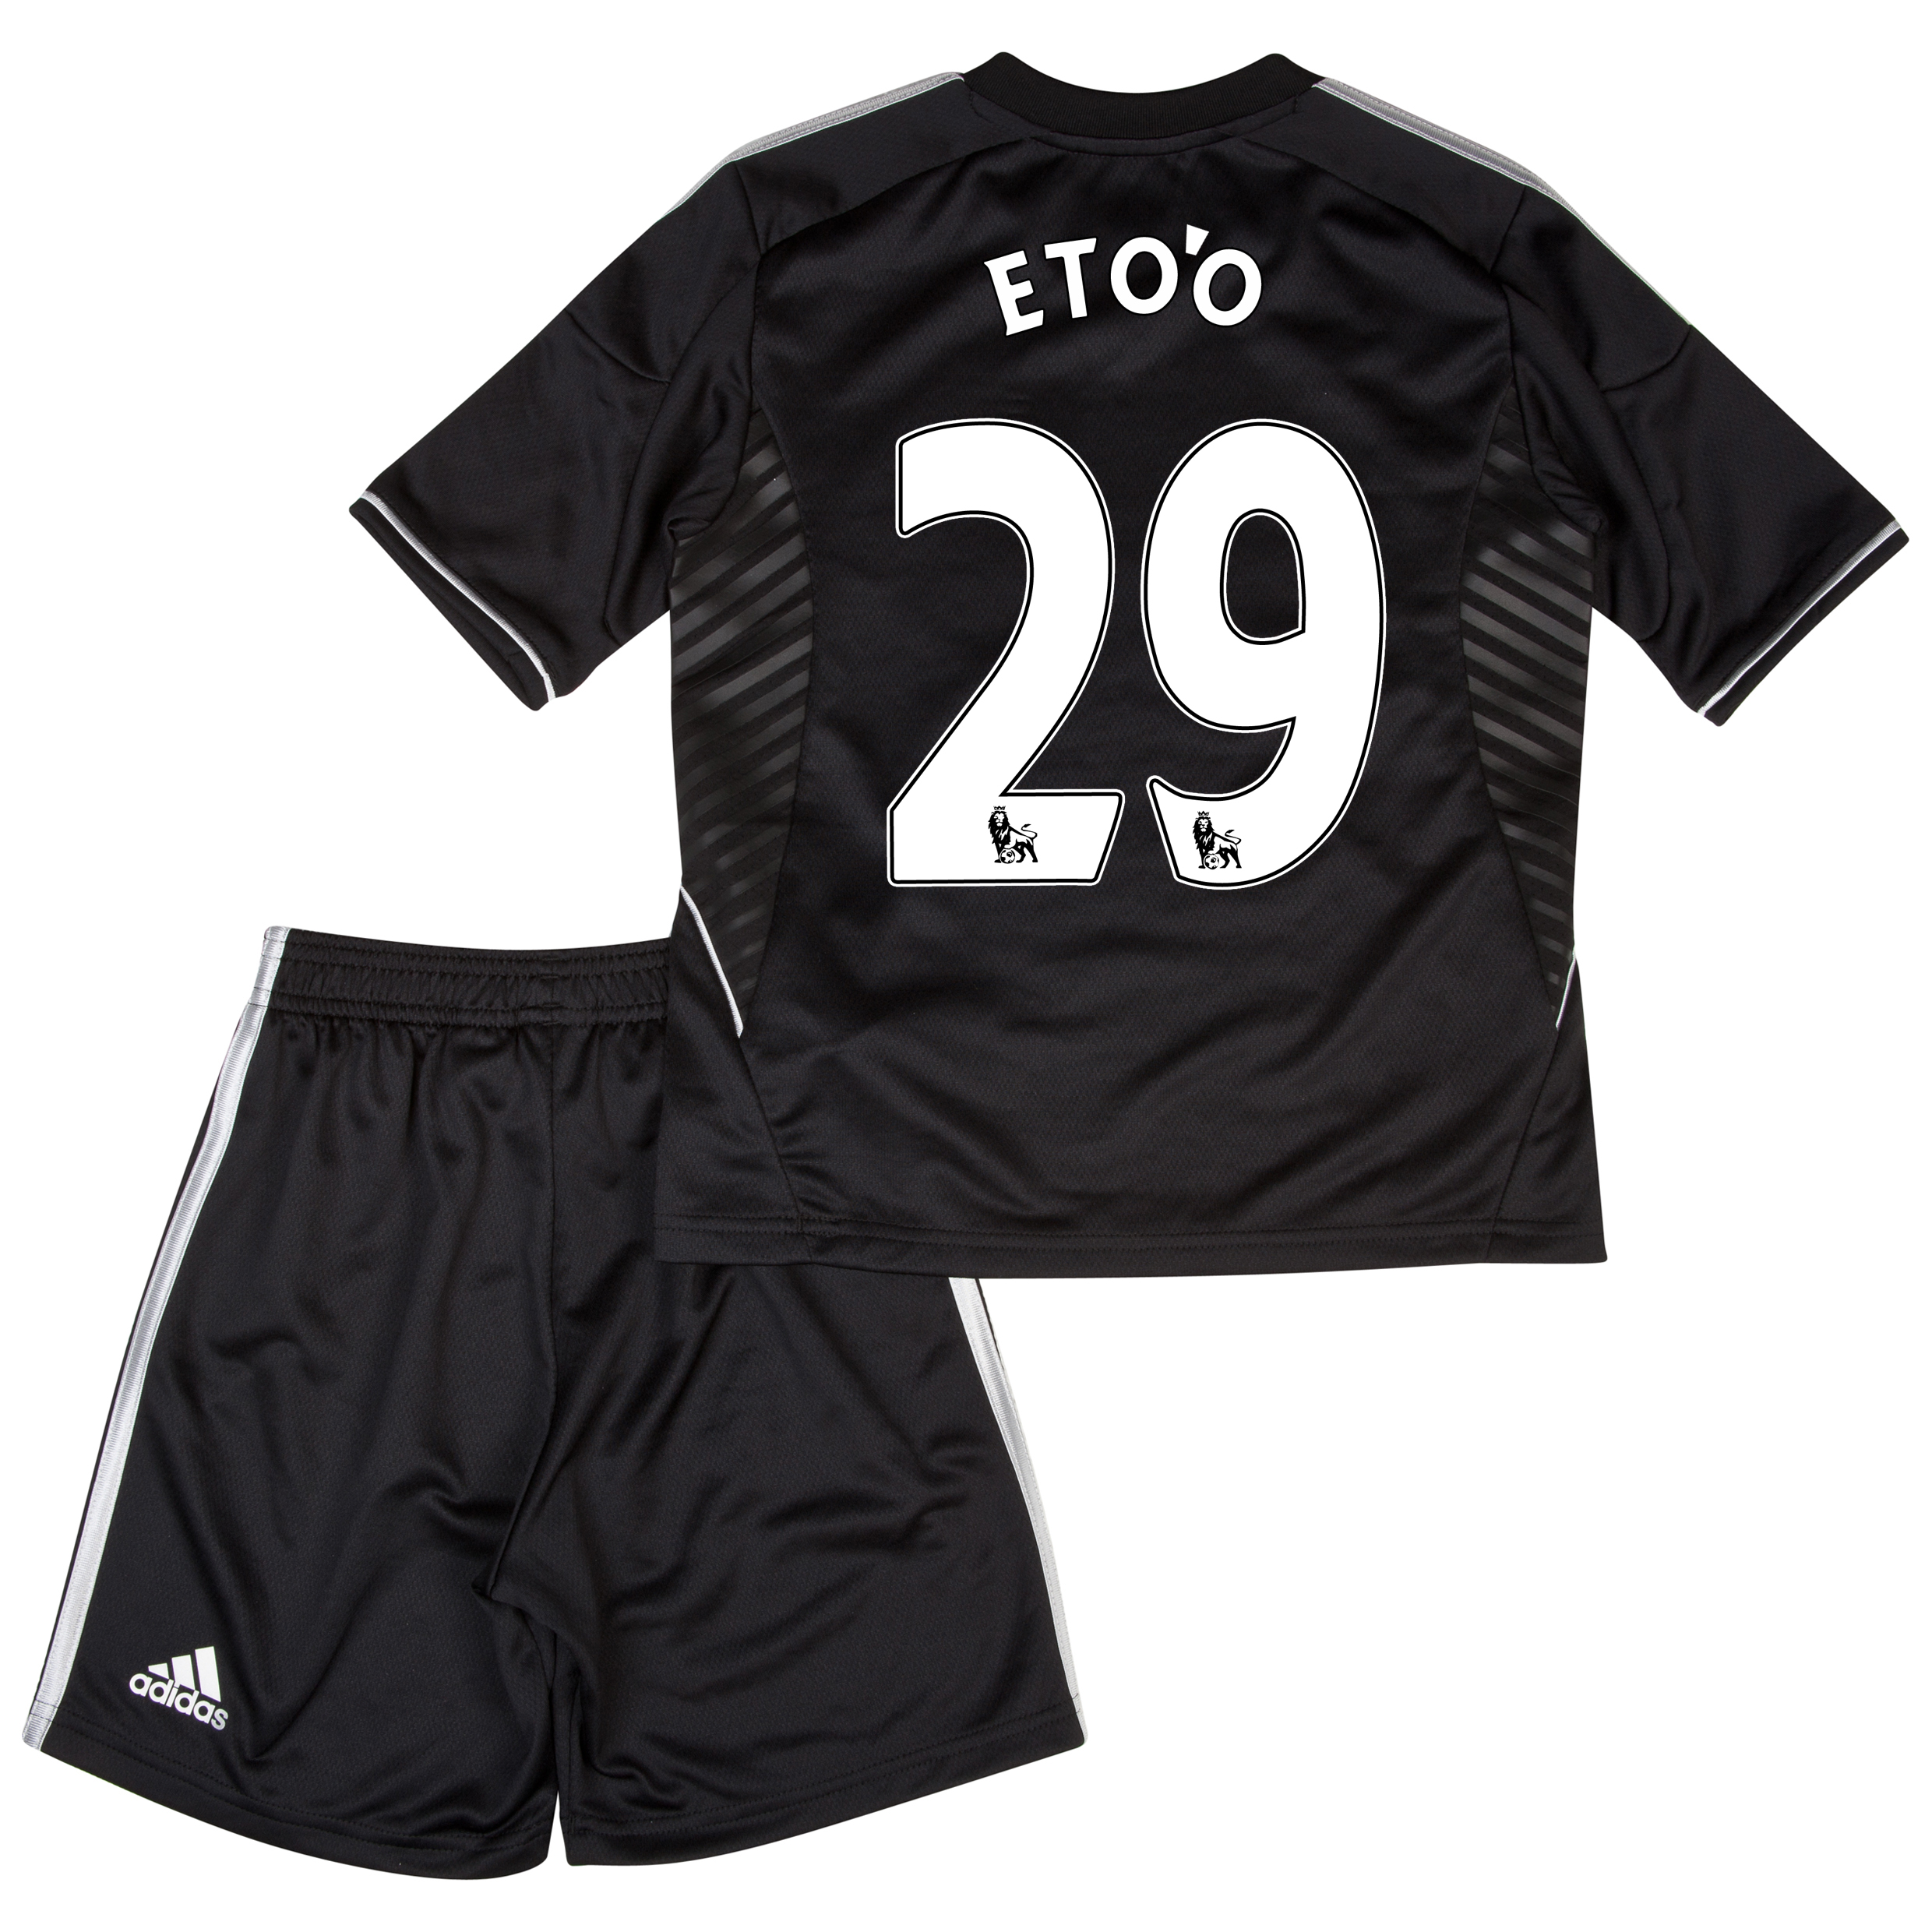 Chelsea Third Mini Kit 2013/14 with Eto'o 29 printing